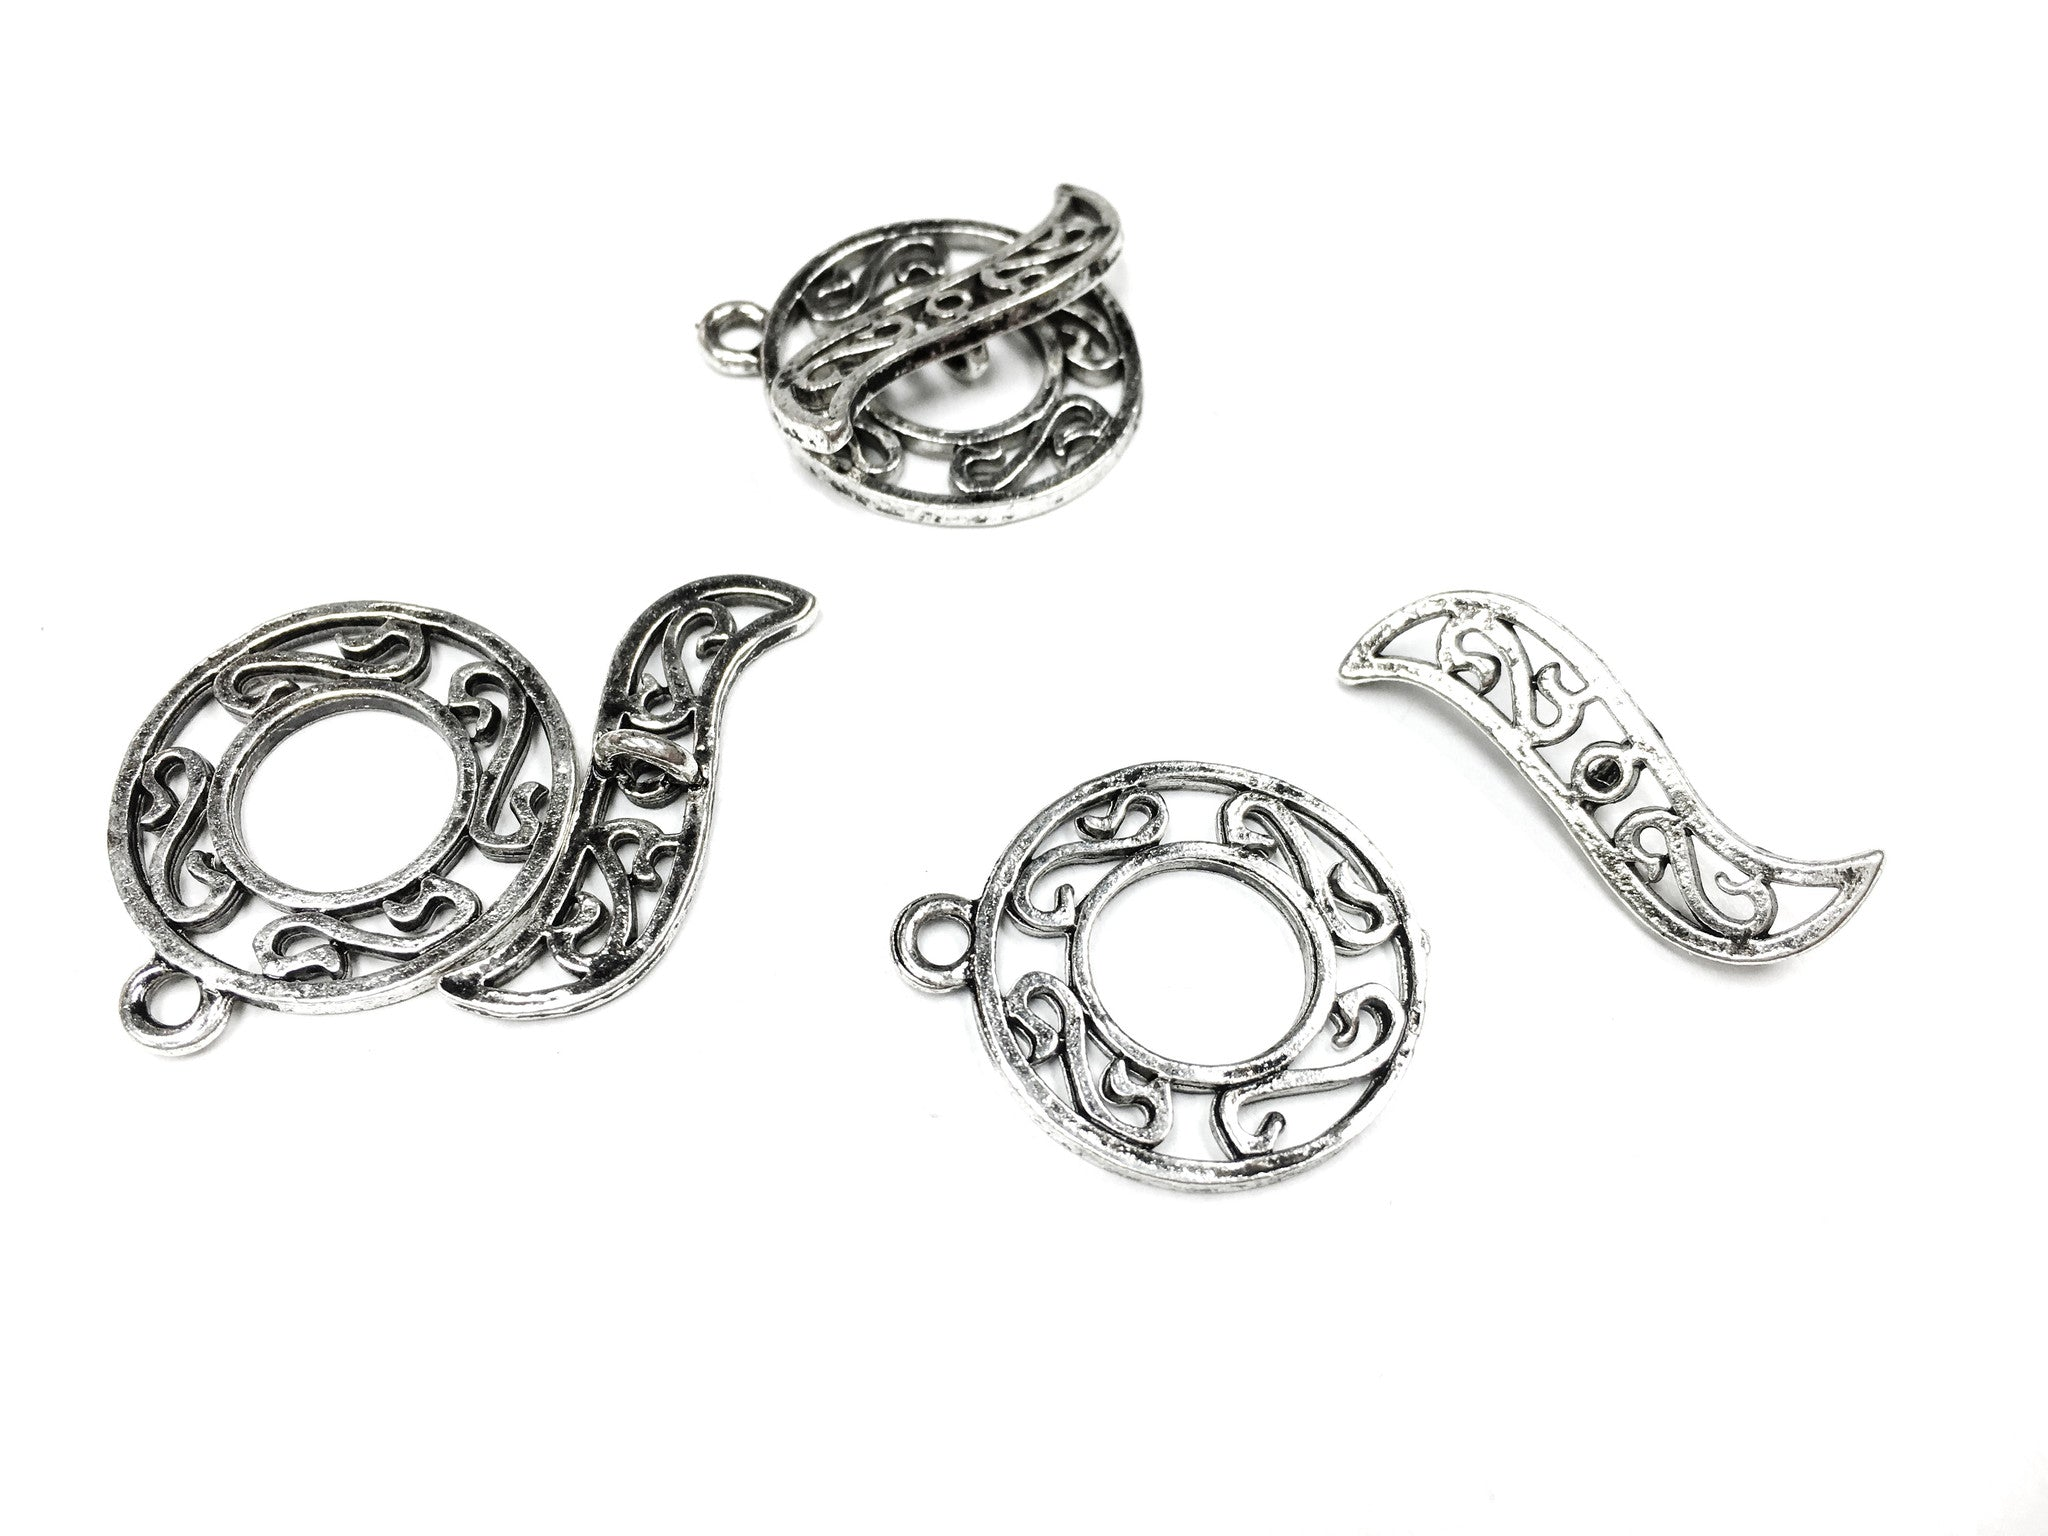 Toggle Clasp - Antique Silver - Open Swirl Detail - 27X23MM- Pkg of 3 Sets